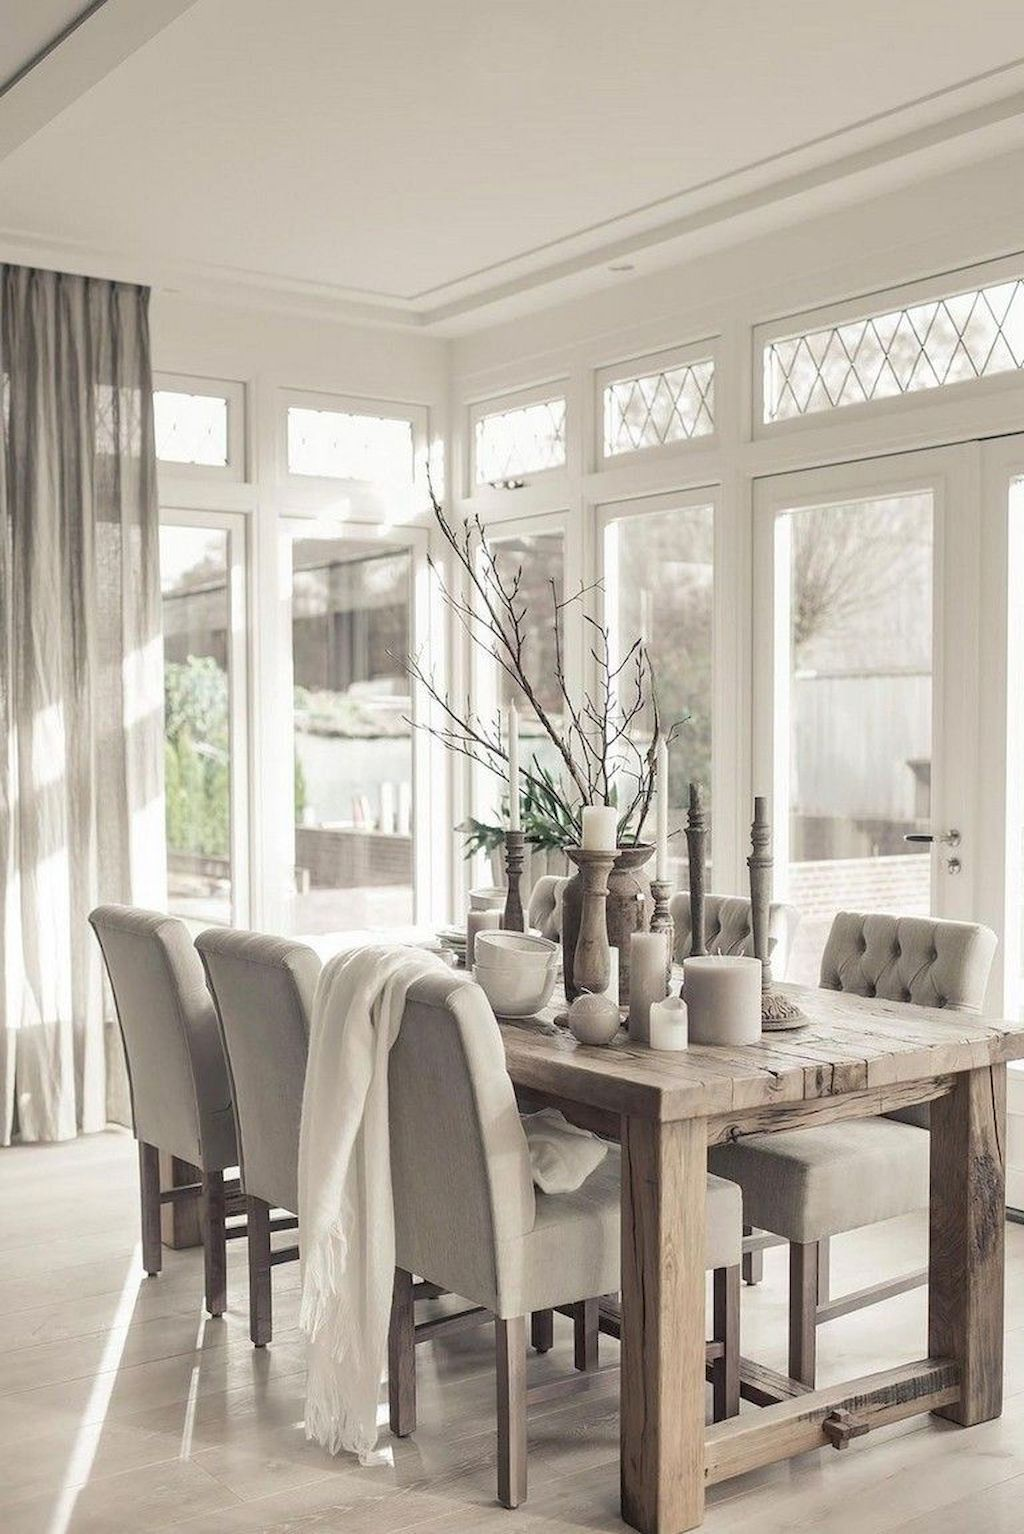 Best Farmhouse Dining Room Decoration Concepts Discover Some Of In 2020 Modern Farmhouse Dining Room Modern Farmhouse Dining Room Decor Farmhouse Dining Rooms Decor